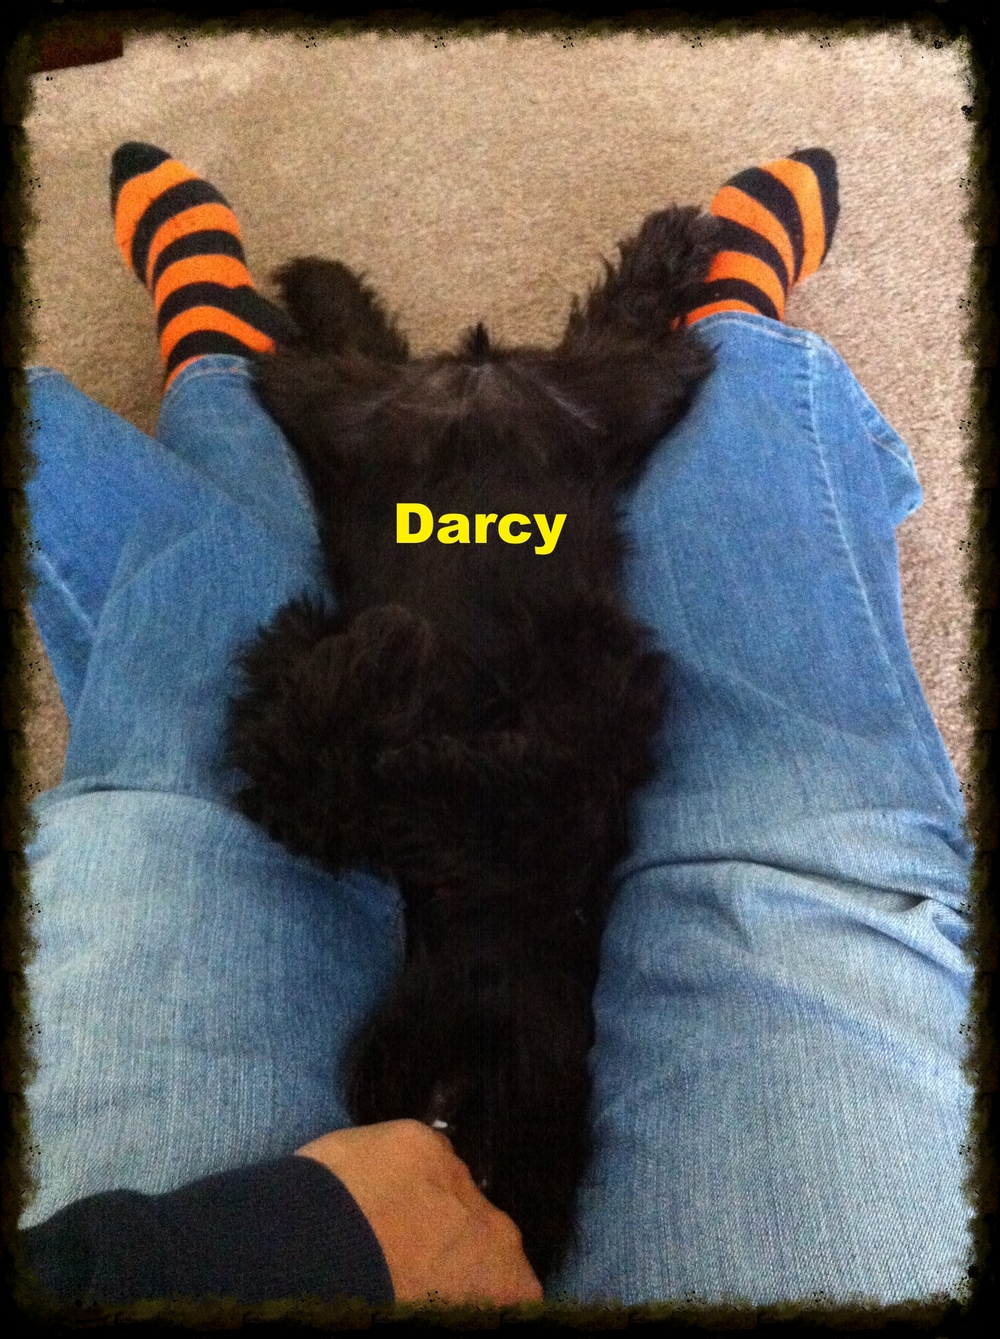 Upside down Darcy resting between my legs!